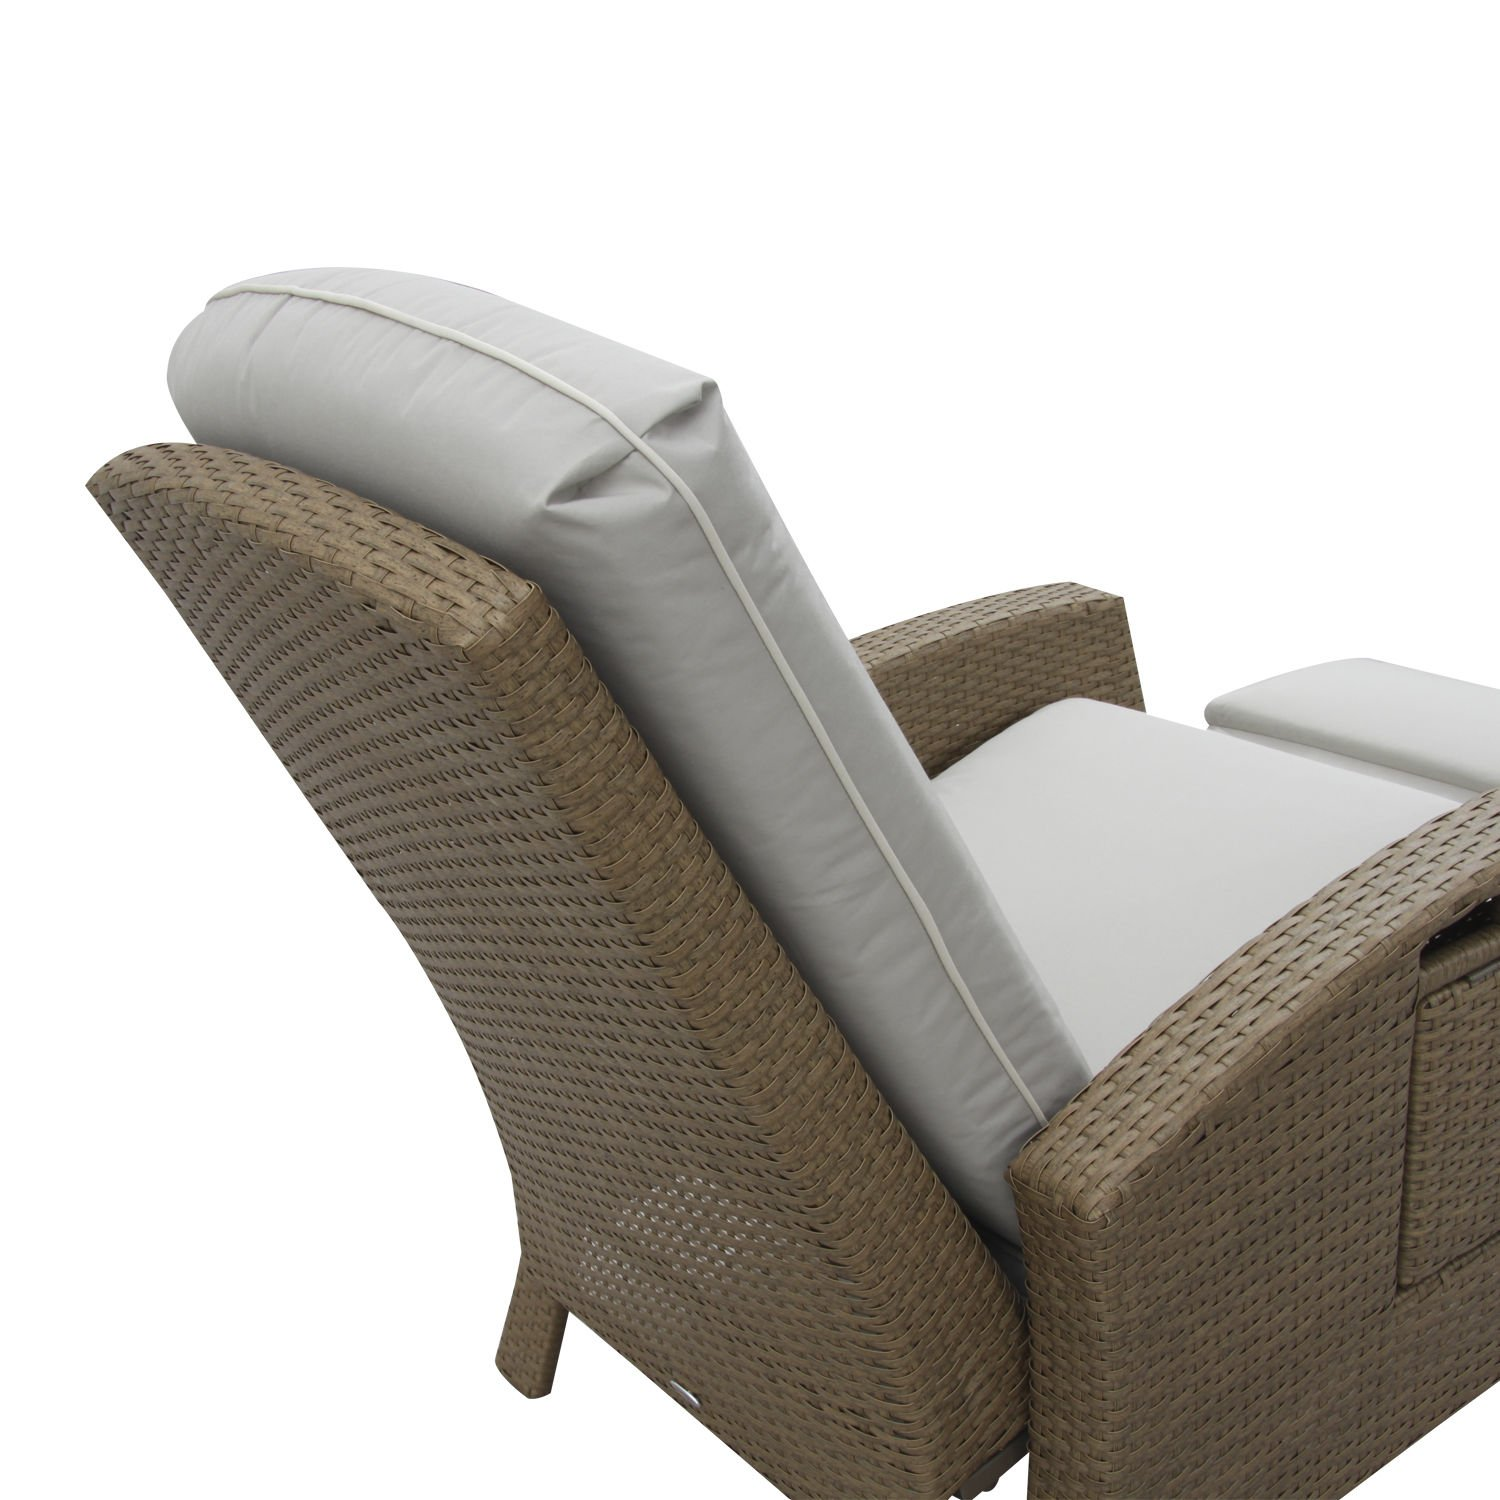 Outsunny Outdoor Rattan Wicker Adjustable Recliner Lounge Chair - Beige and Gray